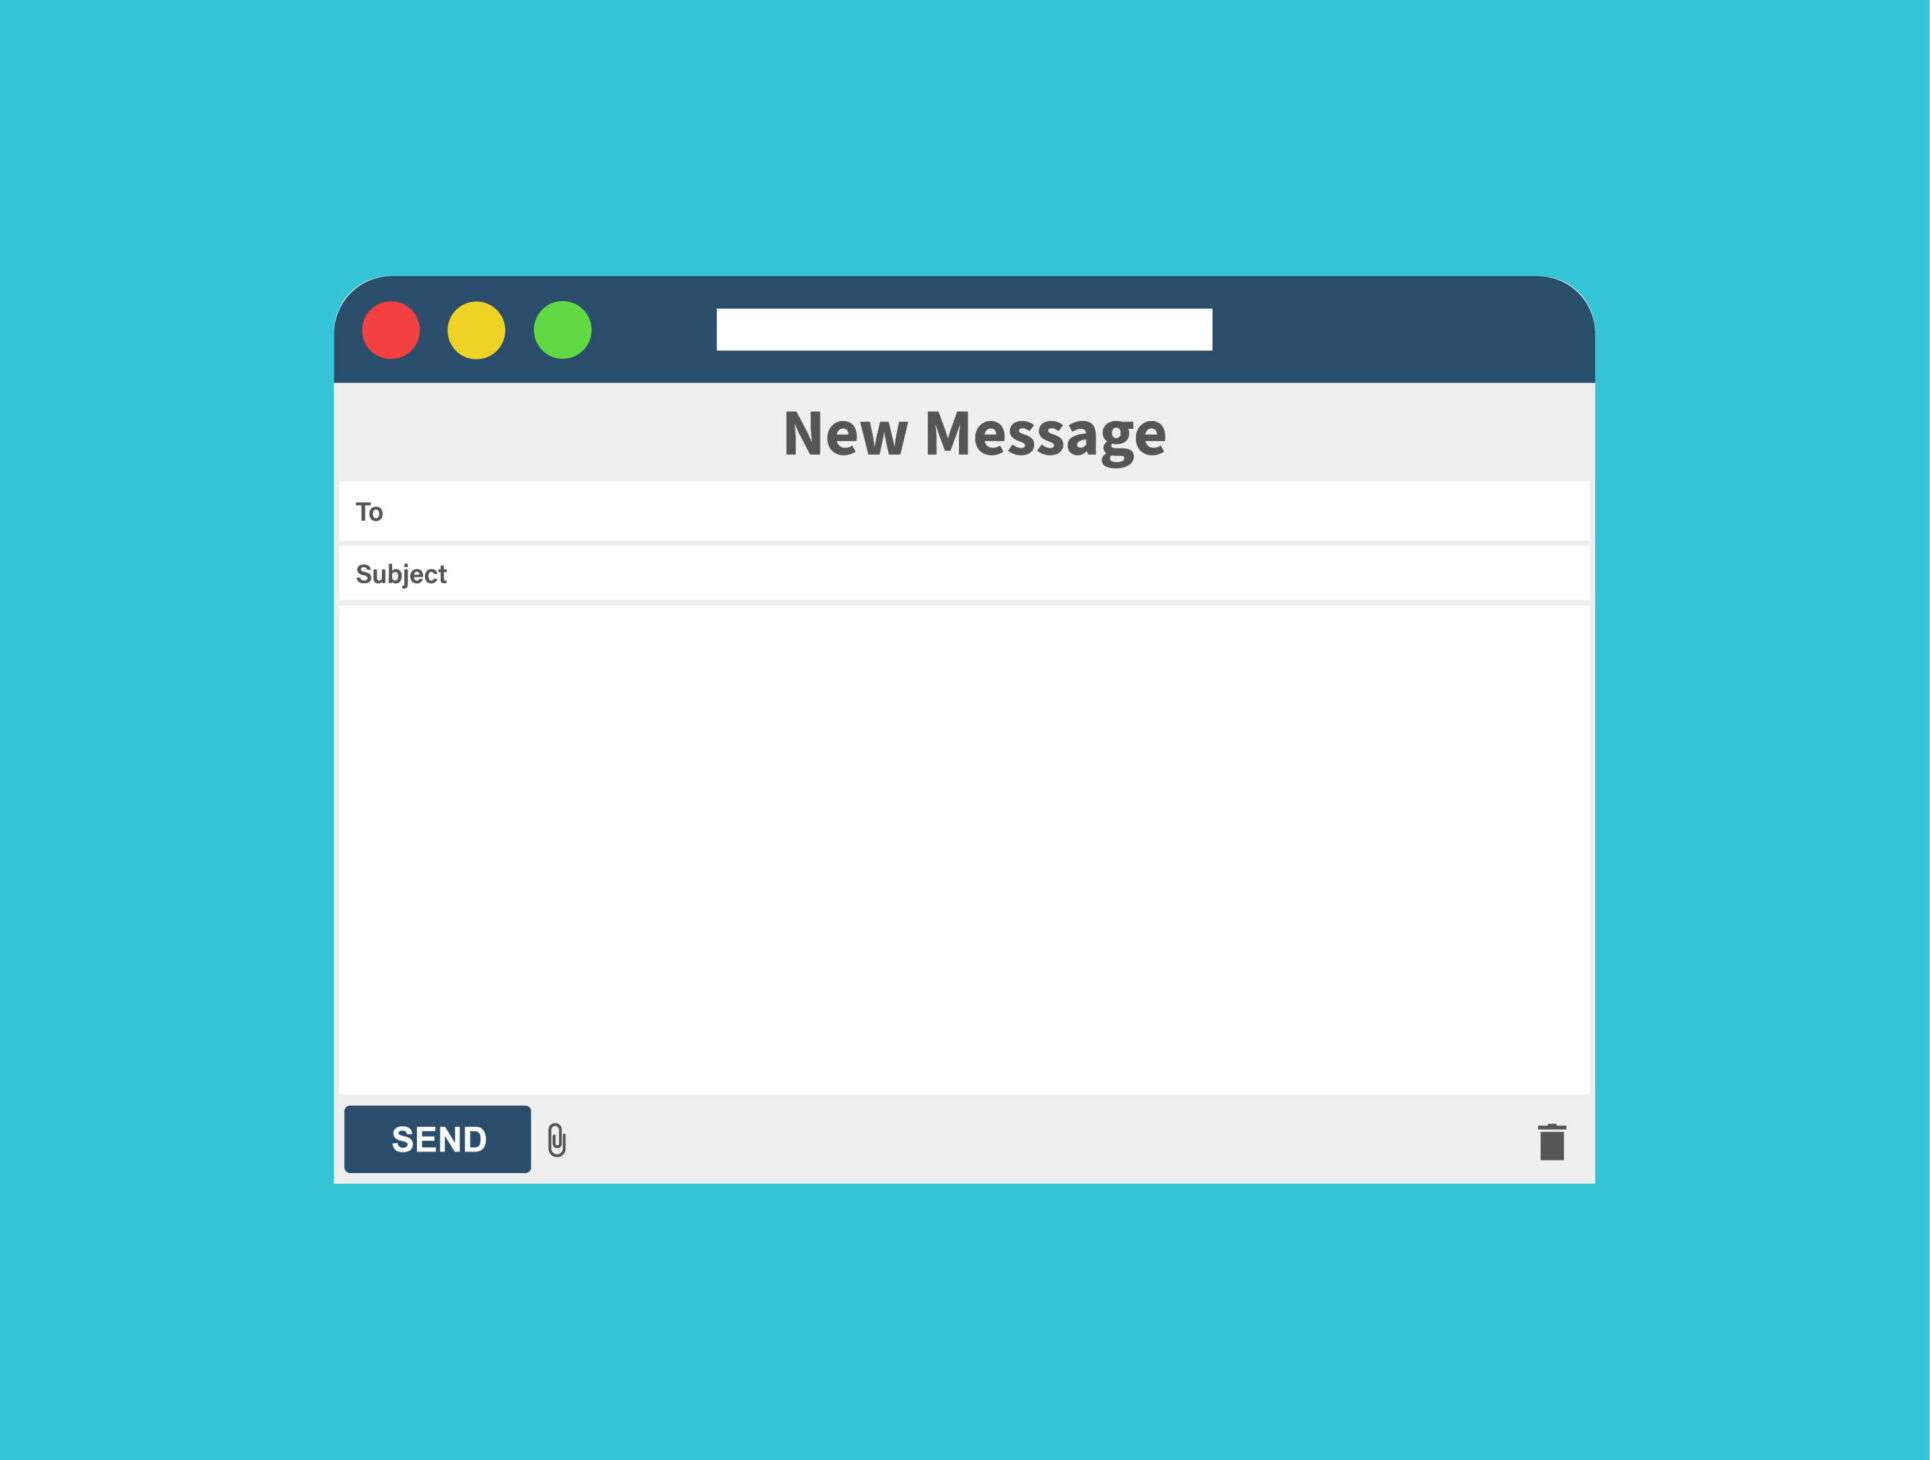 Schedule an onboarding email campaign